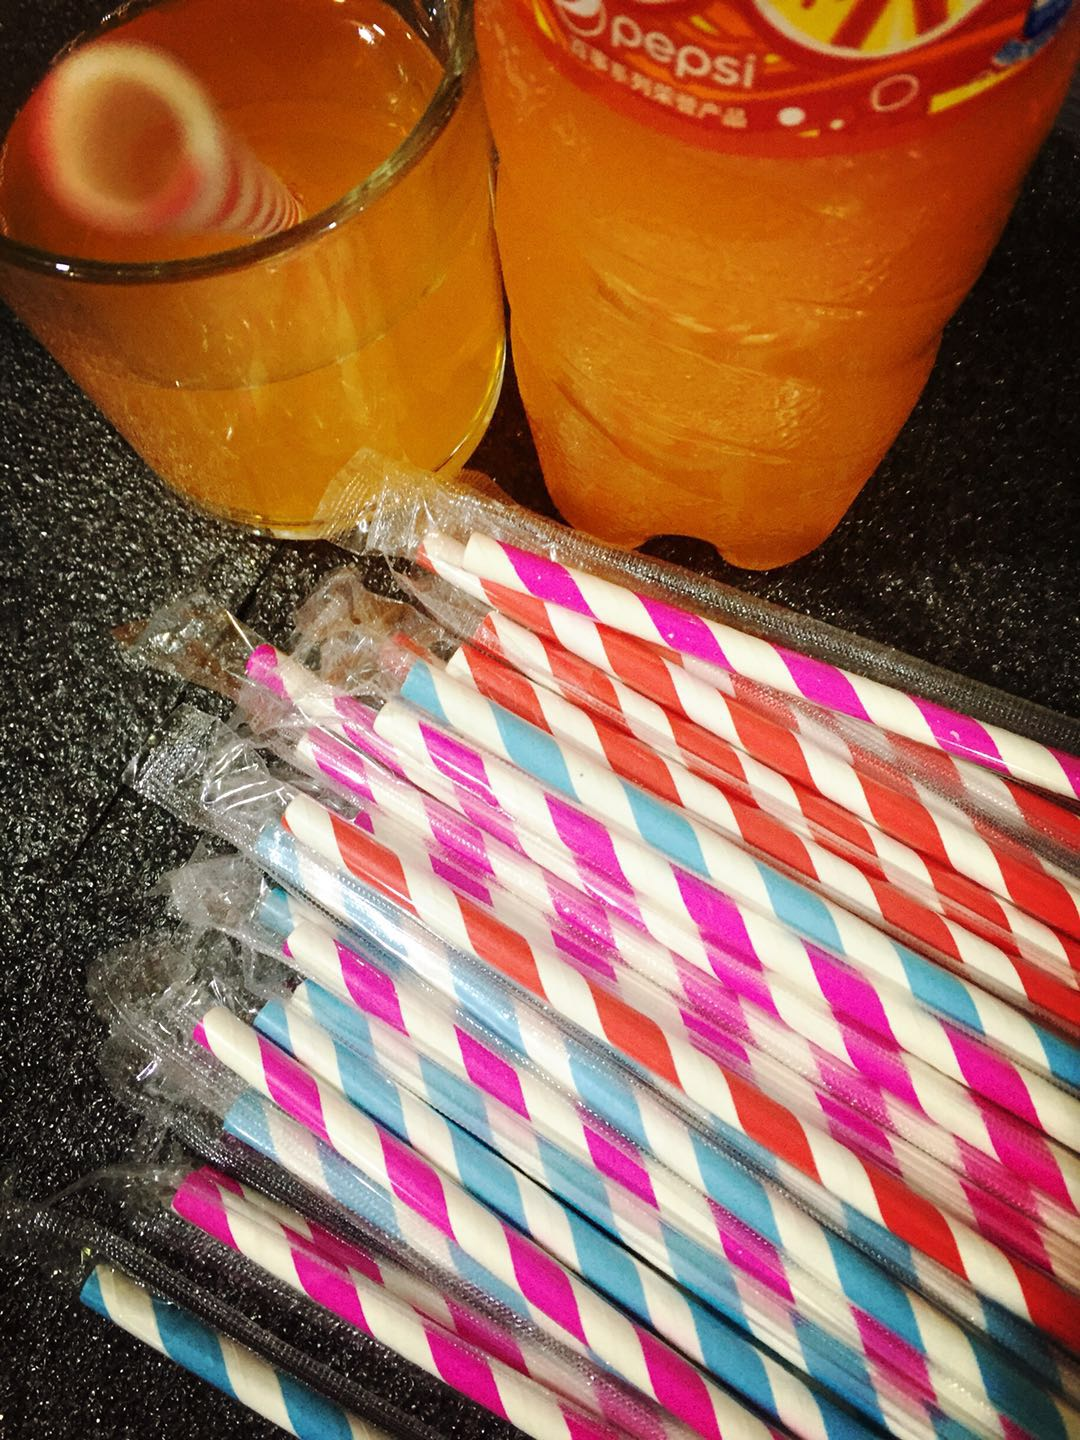 Telescopic Paper Straws for The Flavoured Milk